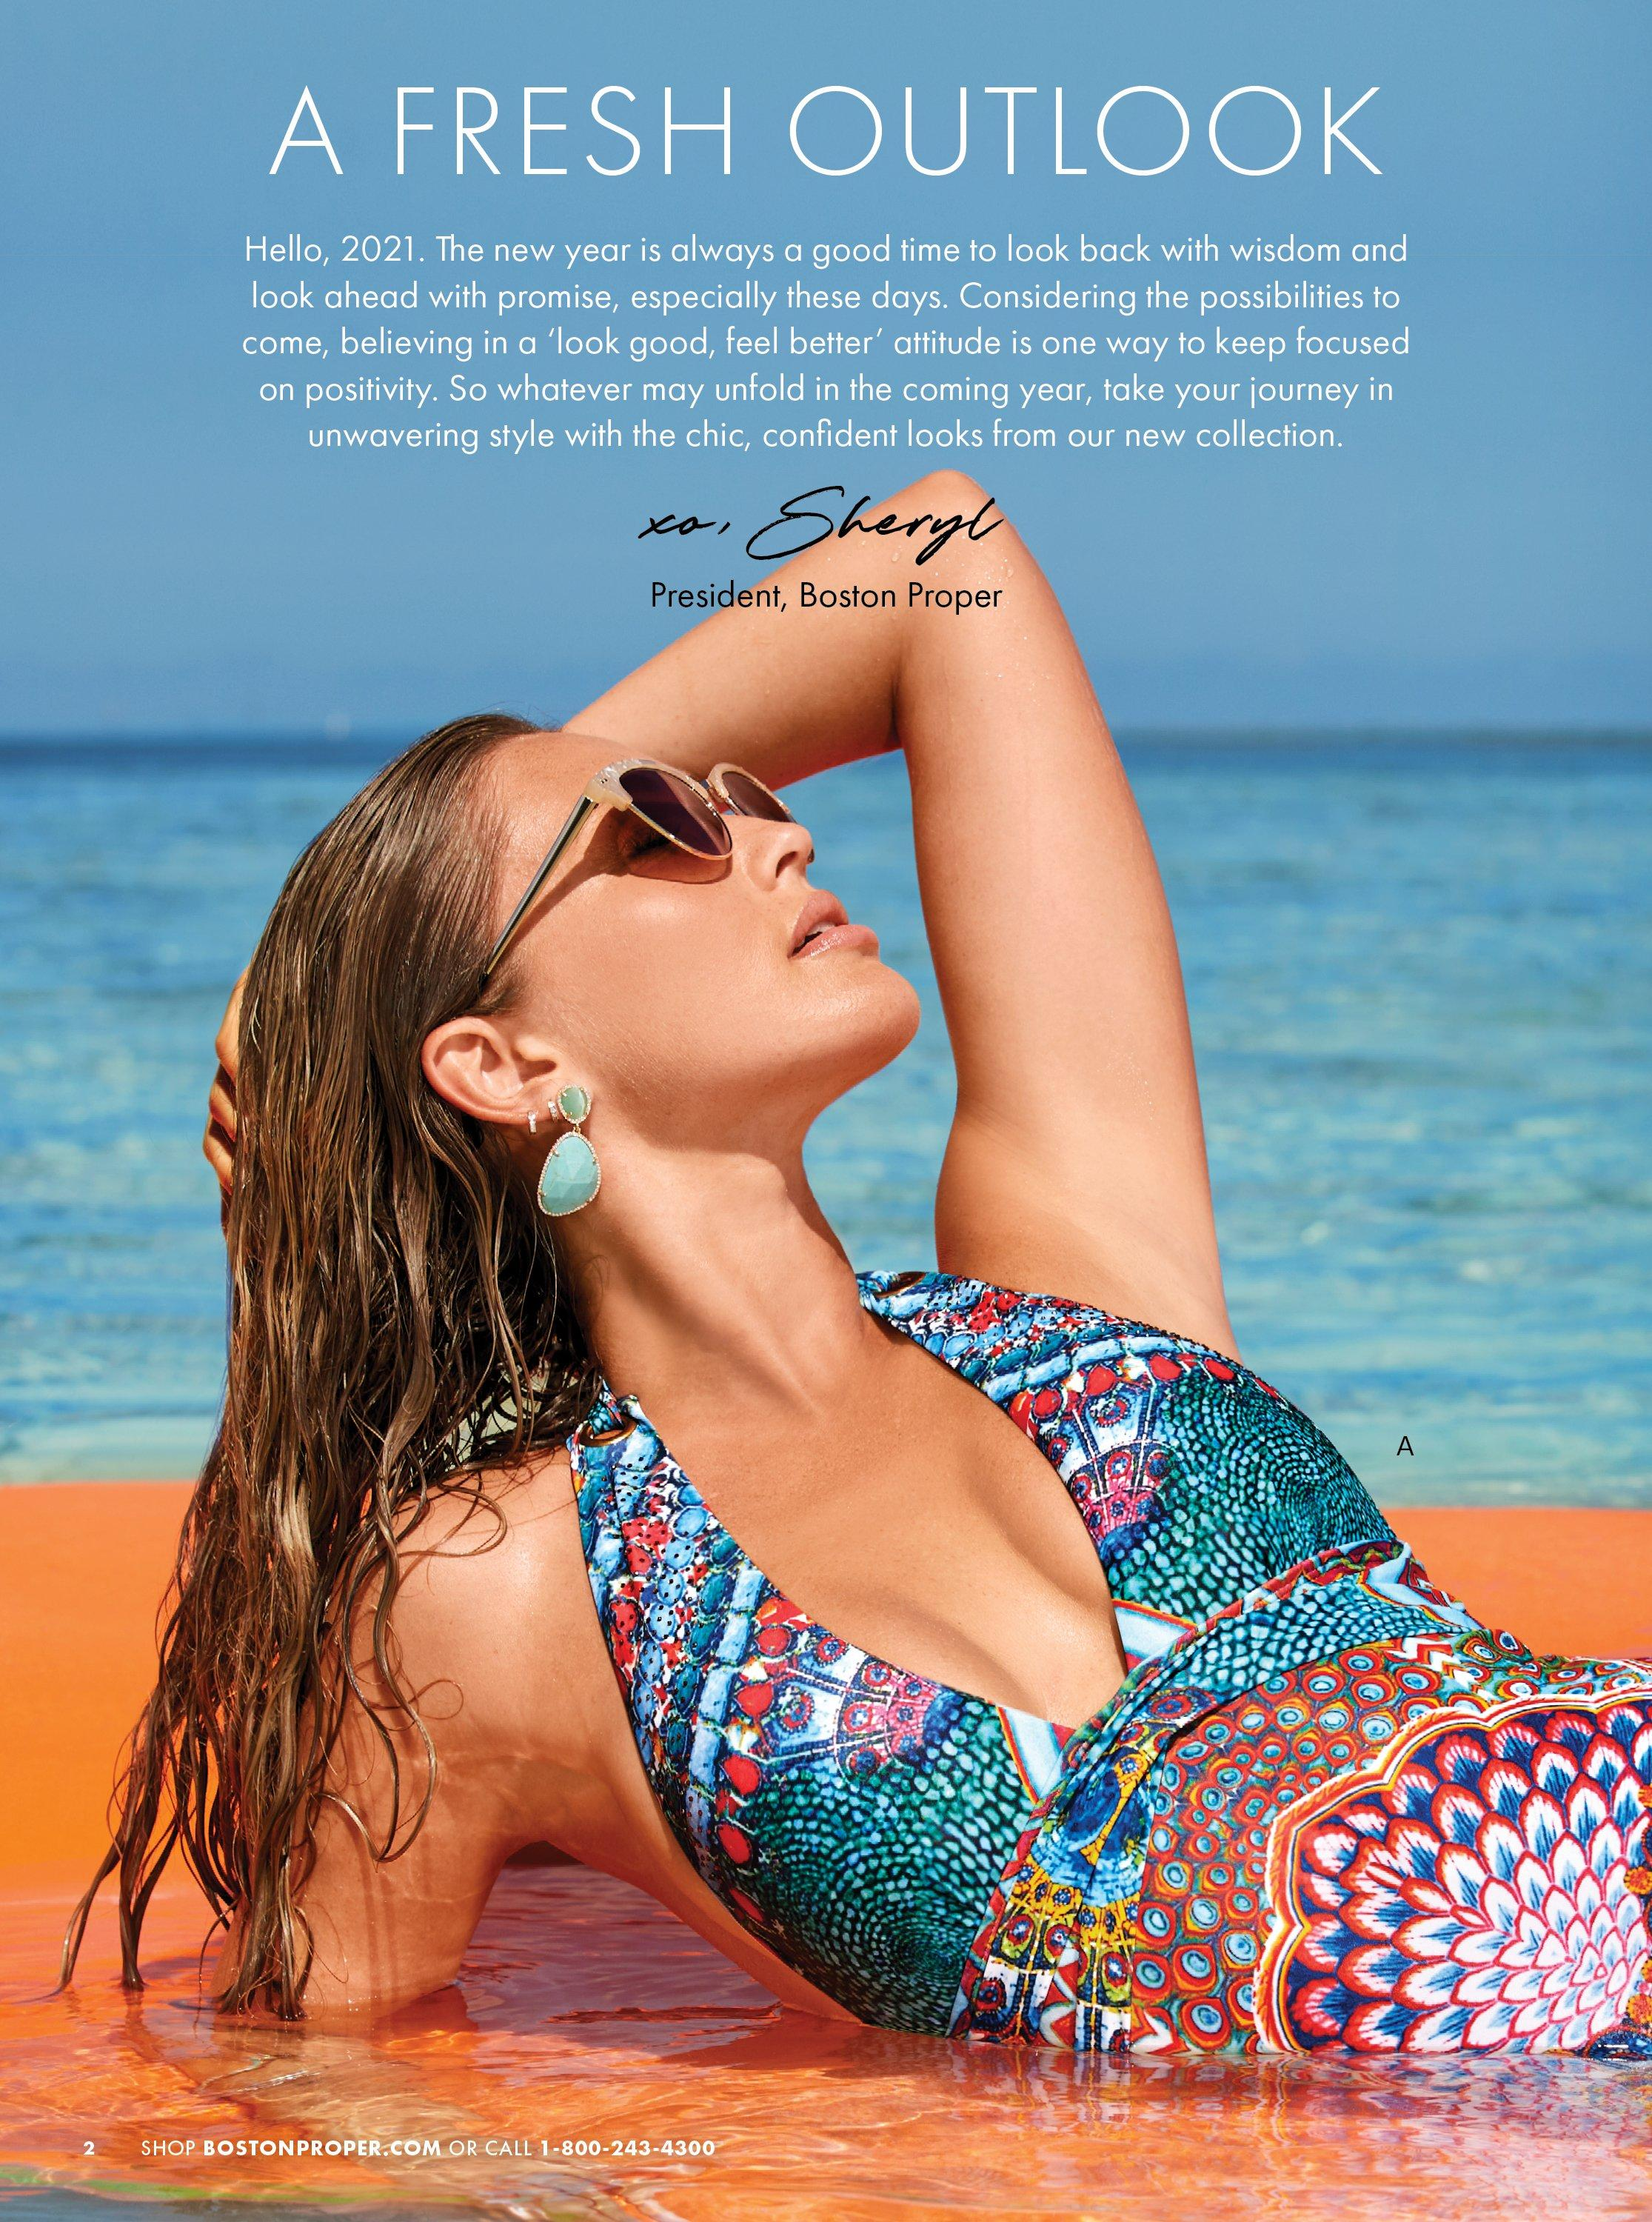 model wearing a printed plunge halter one-piece swimsuit.